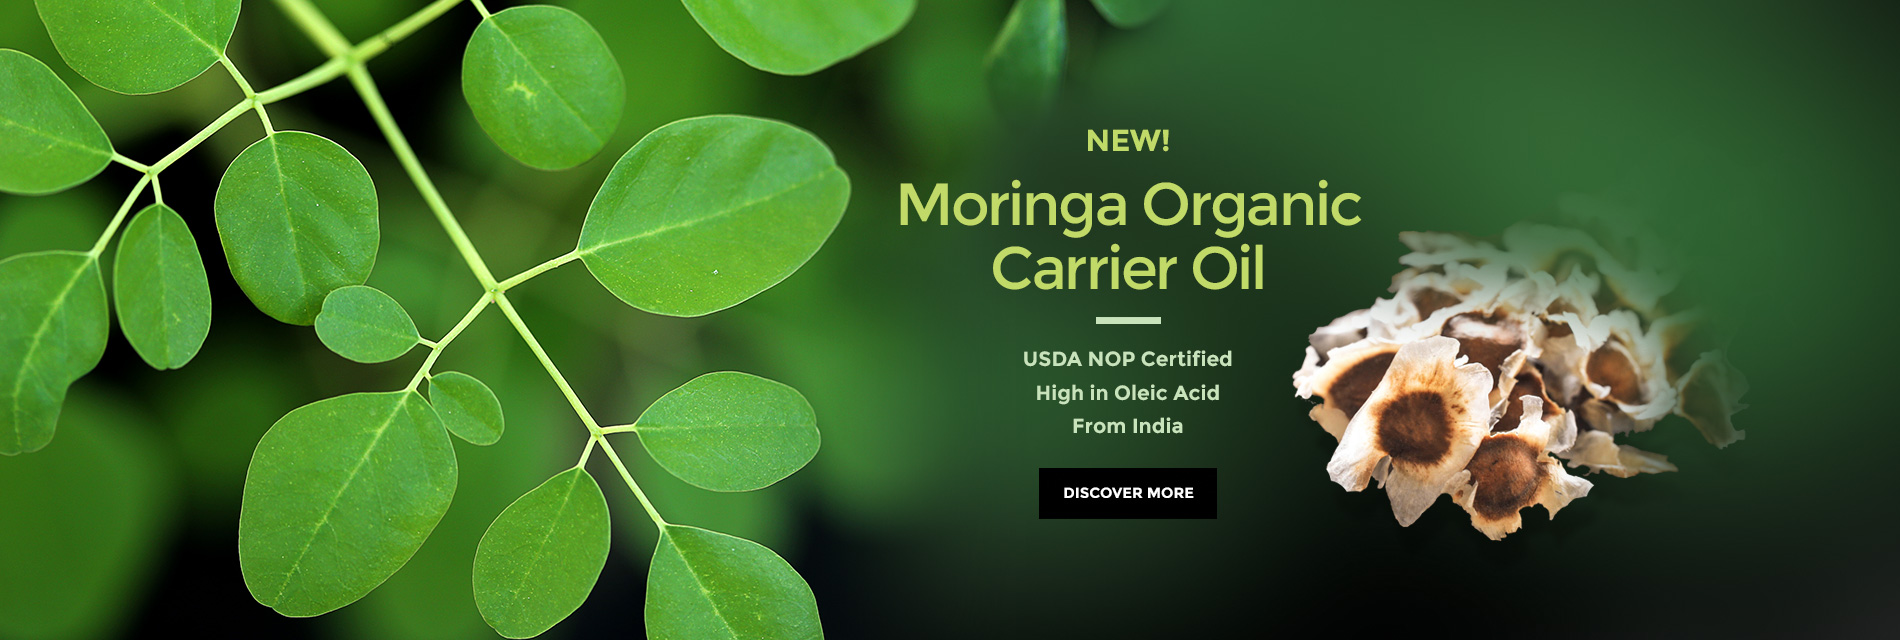 Moringa Organic Carrier Oil